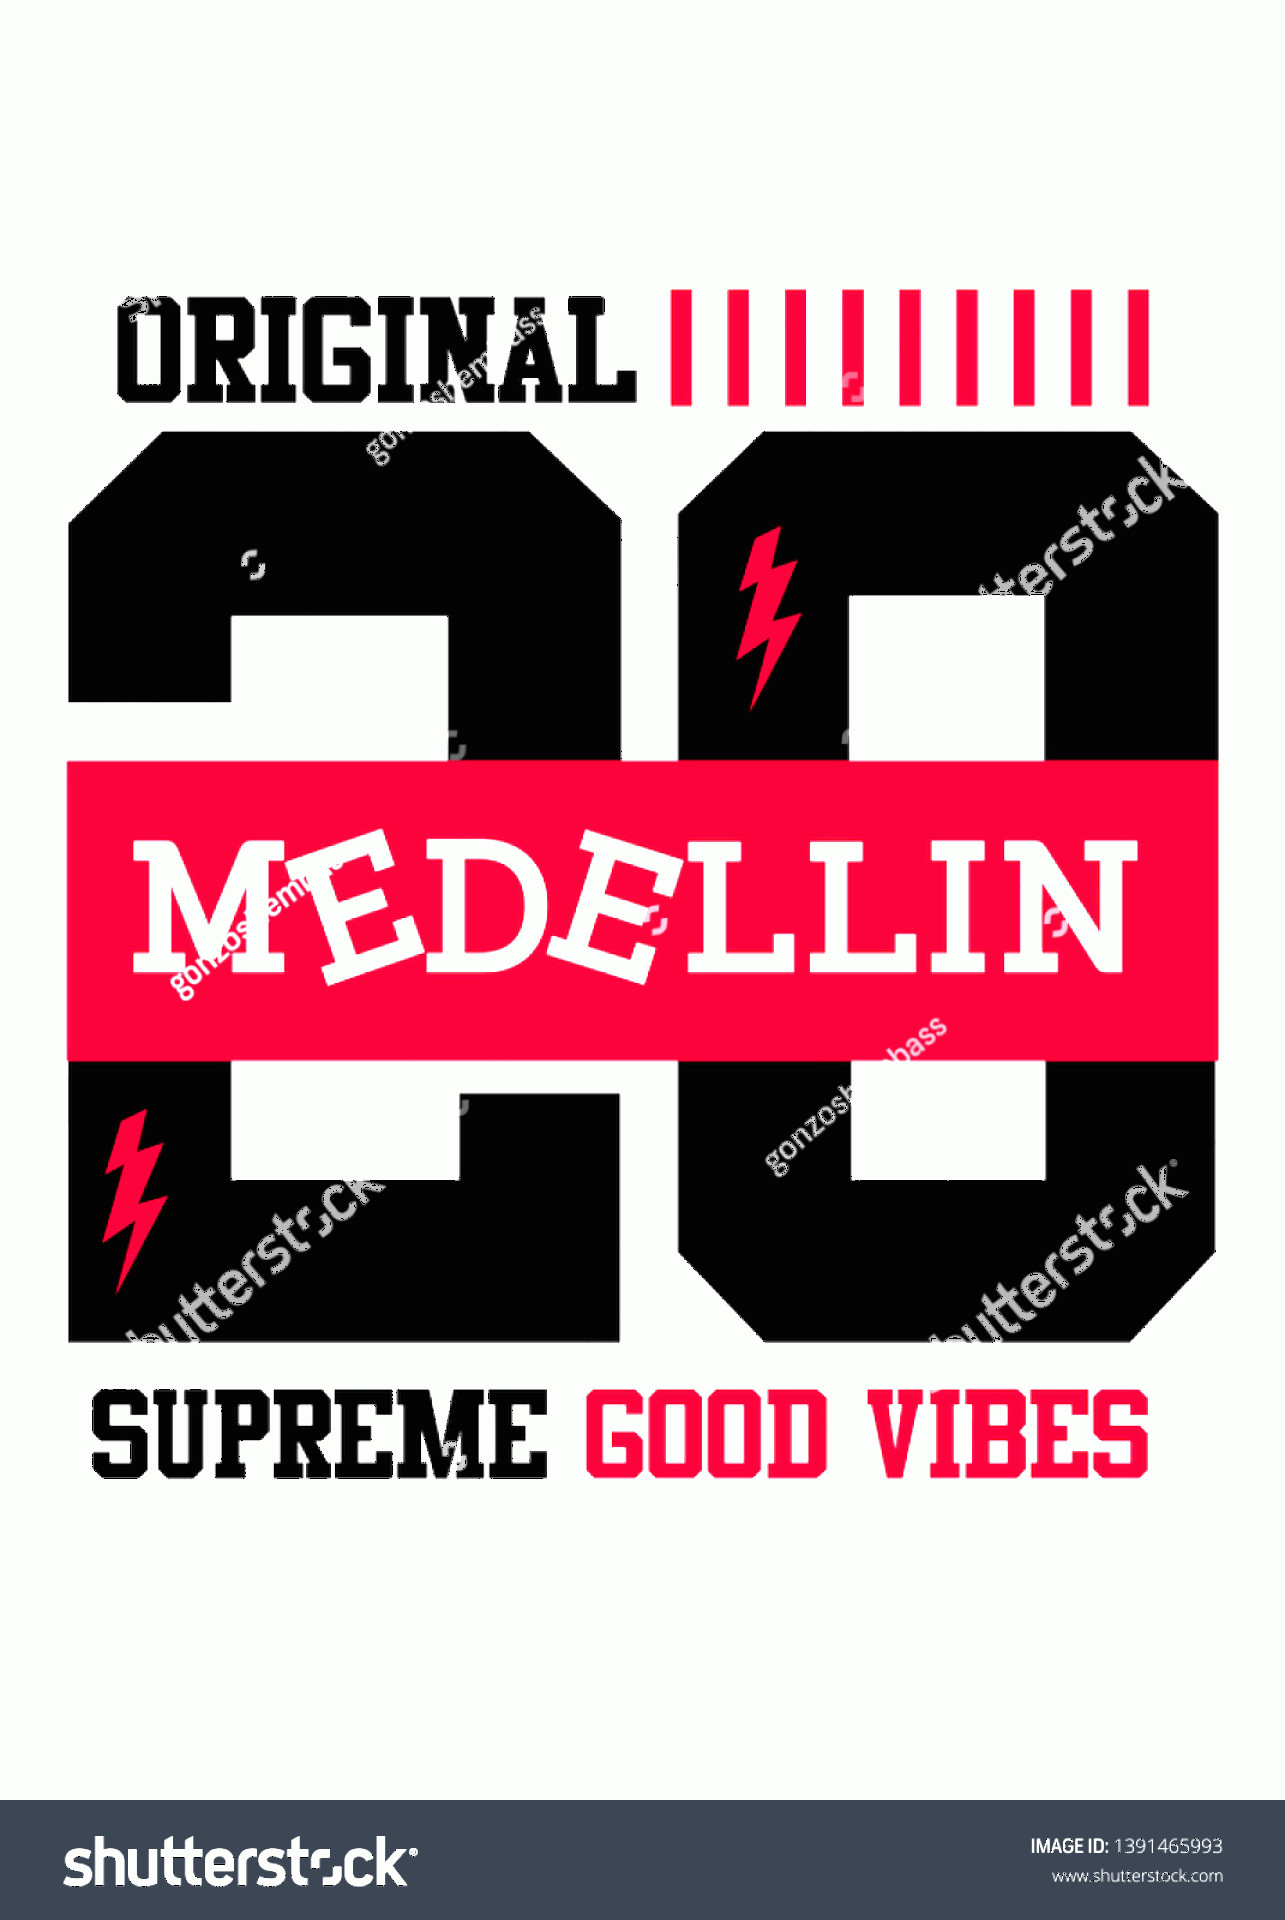 Supreme Vector T-shirt: Medellin Supreme Good Vibestshirt Design Vector